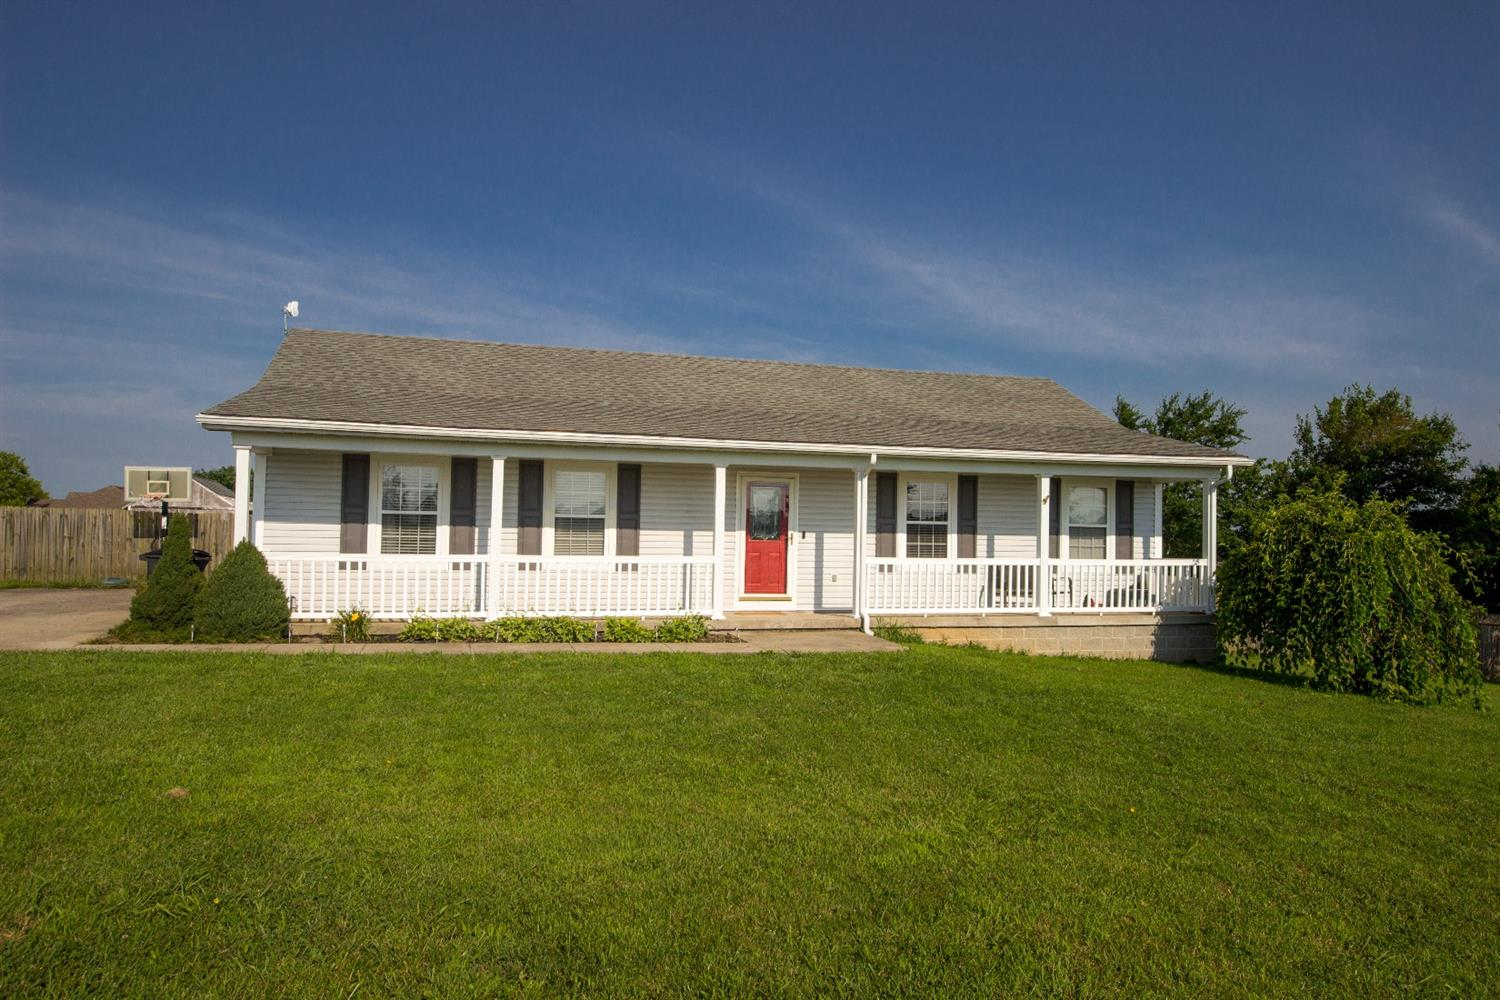 Check%20out%20this%20beautiful%203%20bed,%202%20bath%20ranch%20in%20northern%20Garrard%20County%20while%20it%20is%20still%20available.%20If%20history%20repeats%20itself%20with%20previous%20inventory%20in%20the%20community,%20it%20will%20not%20be%20on%20the%20market%20long!%20Conveniently%20located%20between%20Danville%20and%20Nicholasville,%20this%20home%20is%20also%20just%205%20minutes%20from%20Herrington%20Lake!%20Plenty%20of%20room%20for%20the%20boat,%20and%20the%20backyard%20in%20completely%20fenced%20in.